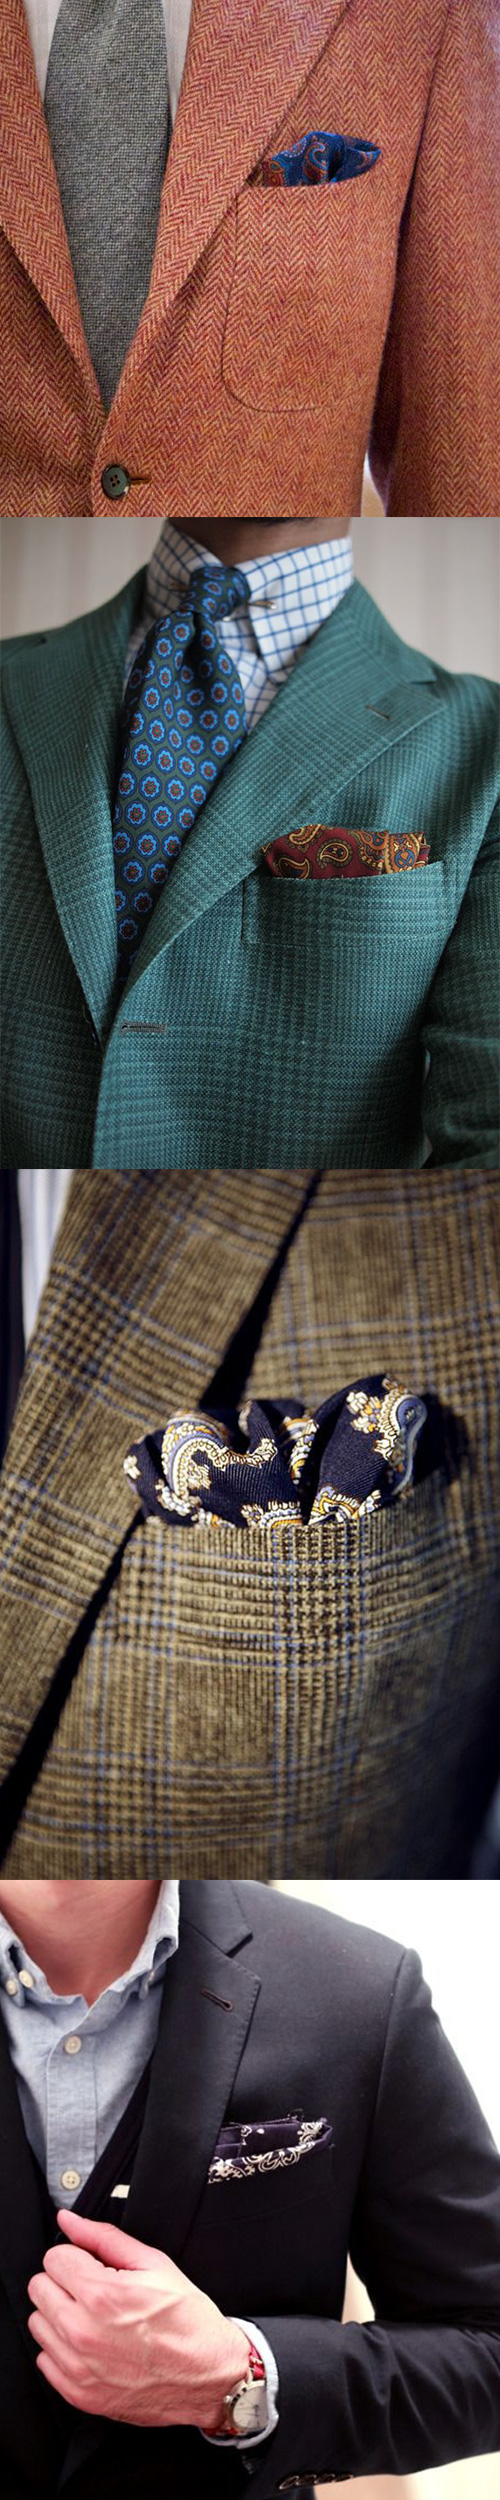 Paisley Pocket Squares and Blazers